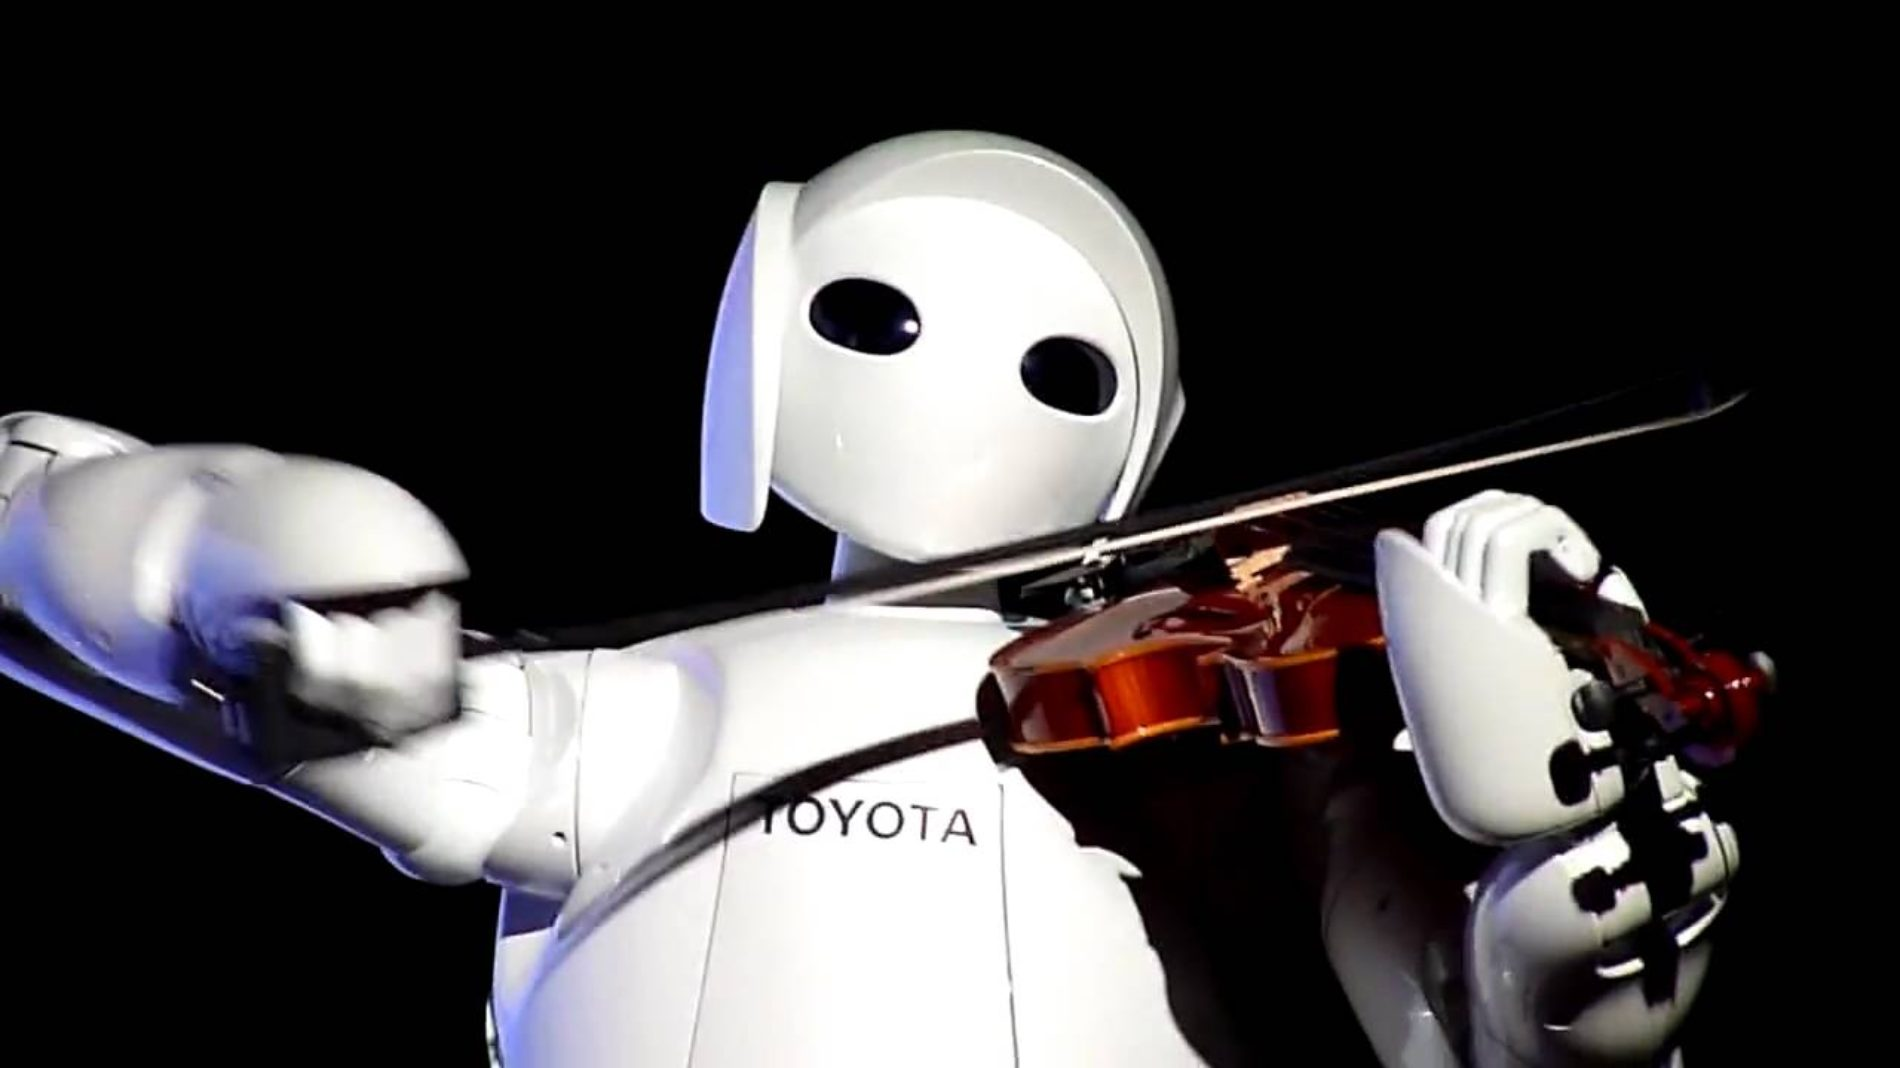 Violin-Playing Robot. Robot which can play the song on violin.